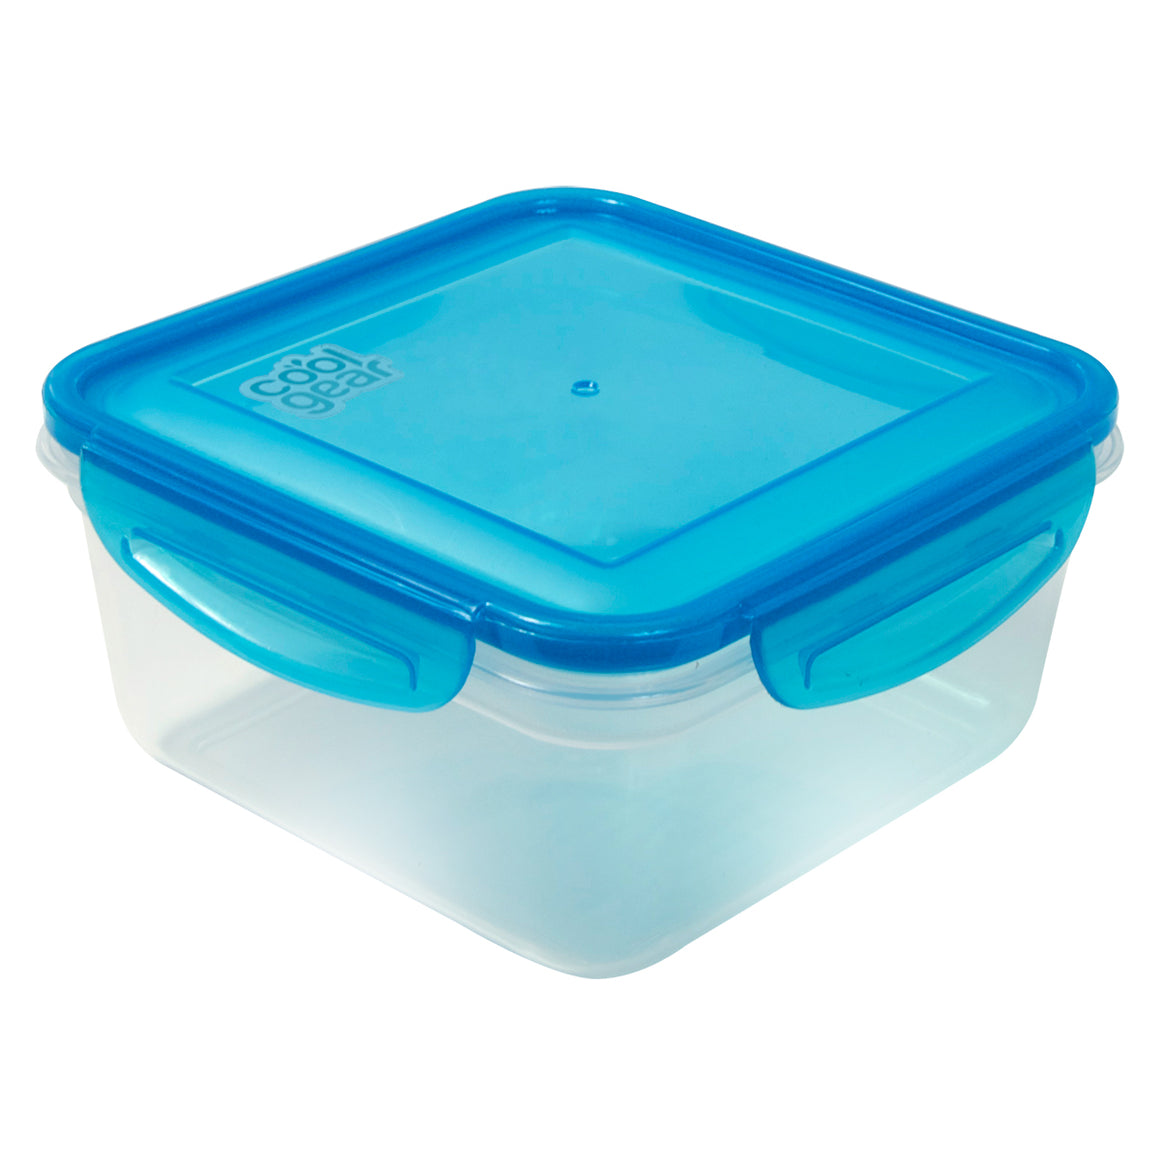 Orange 35.8 Oz Snap N Seal Medium Square Food Container at Cool Gear Food Containers